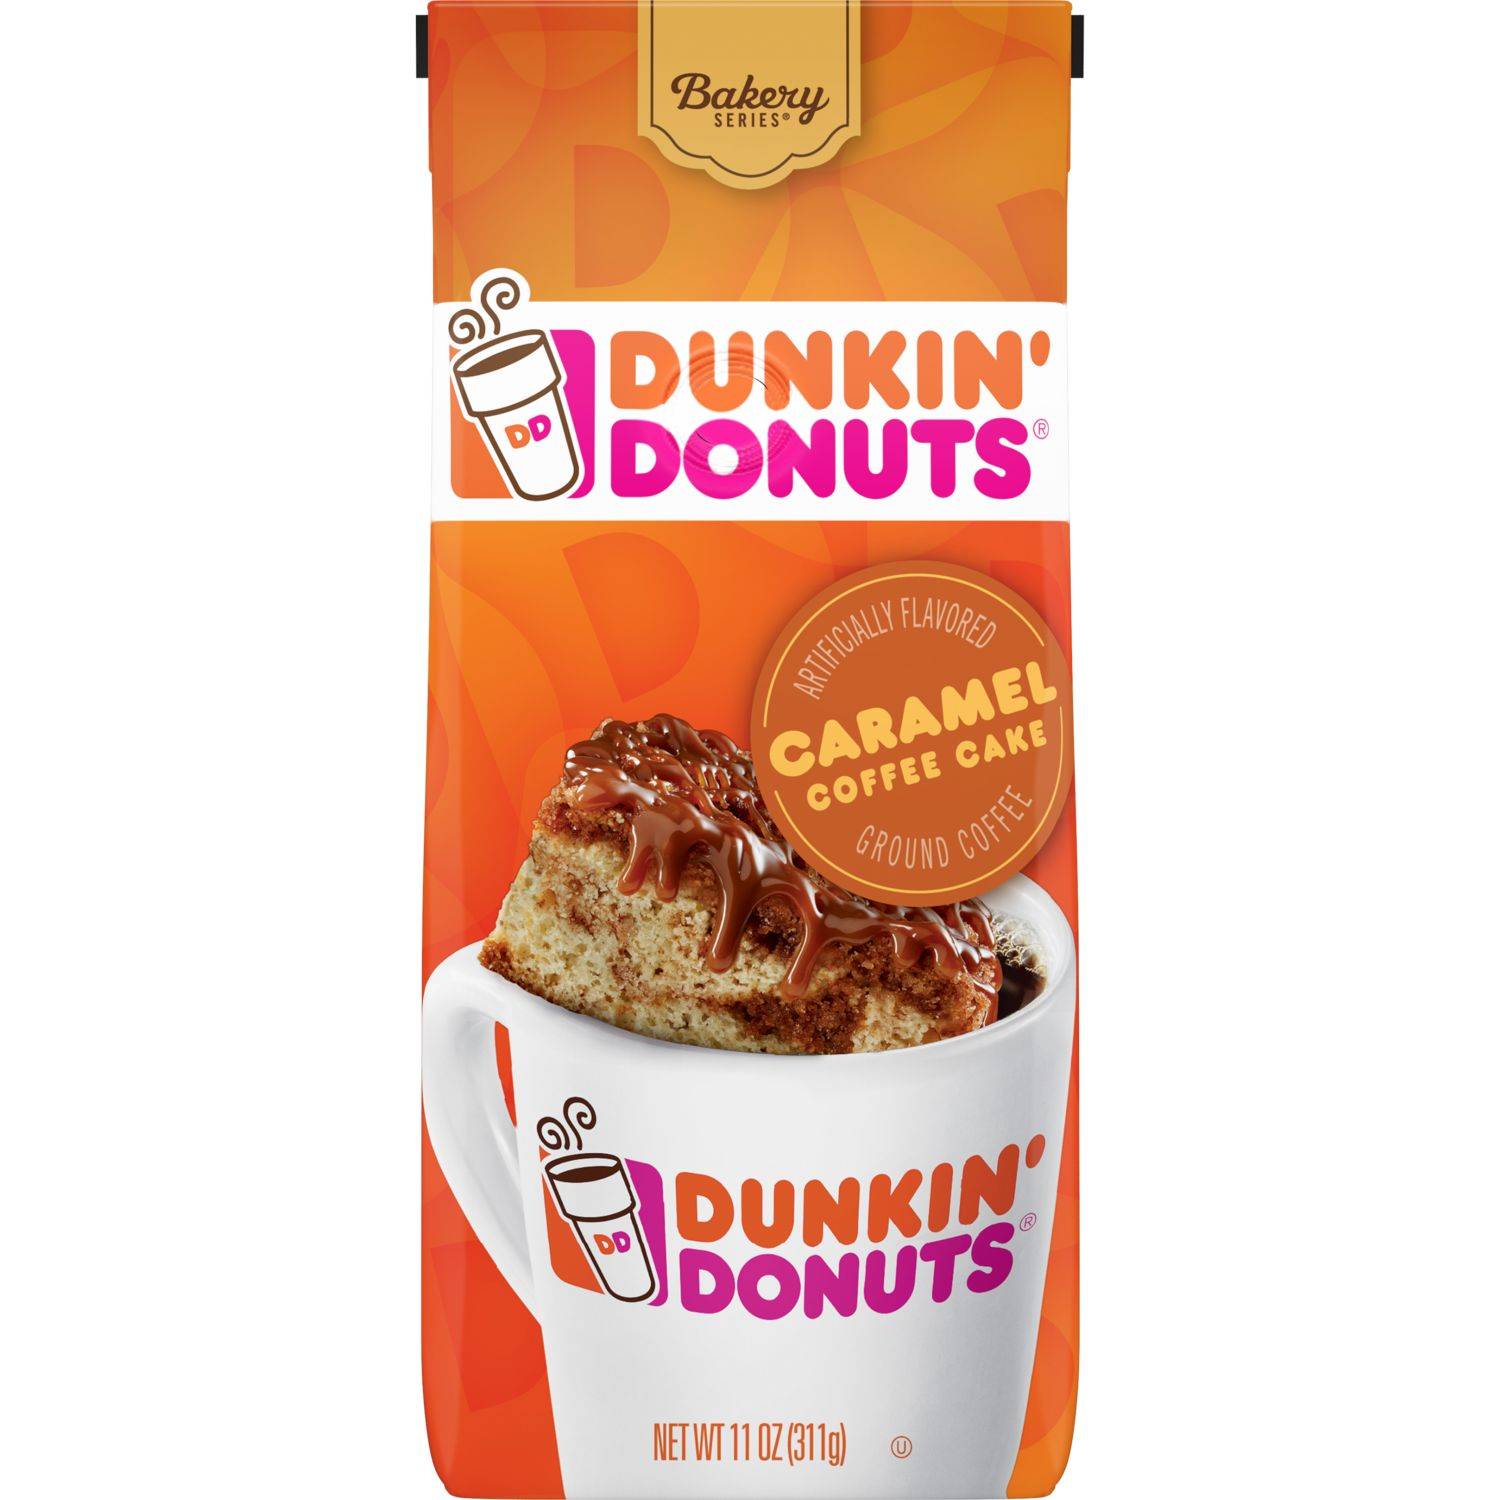 Coconut Caramel Coffee Dunkin Donuts Calories